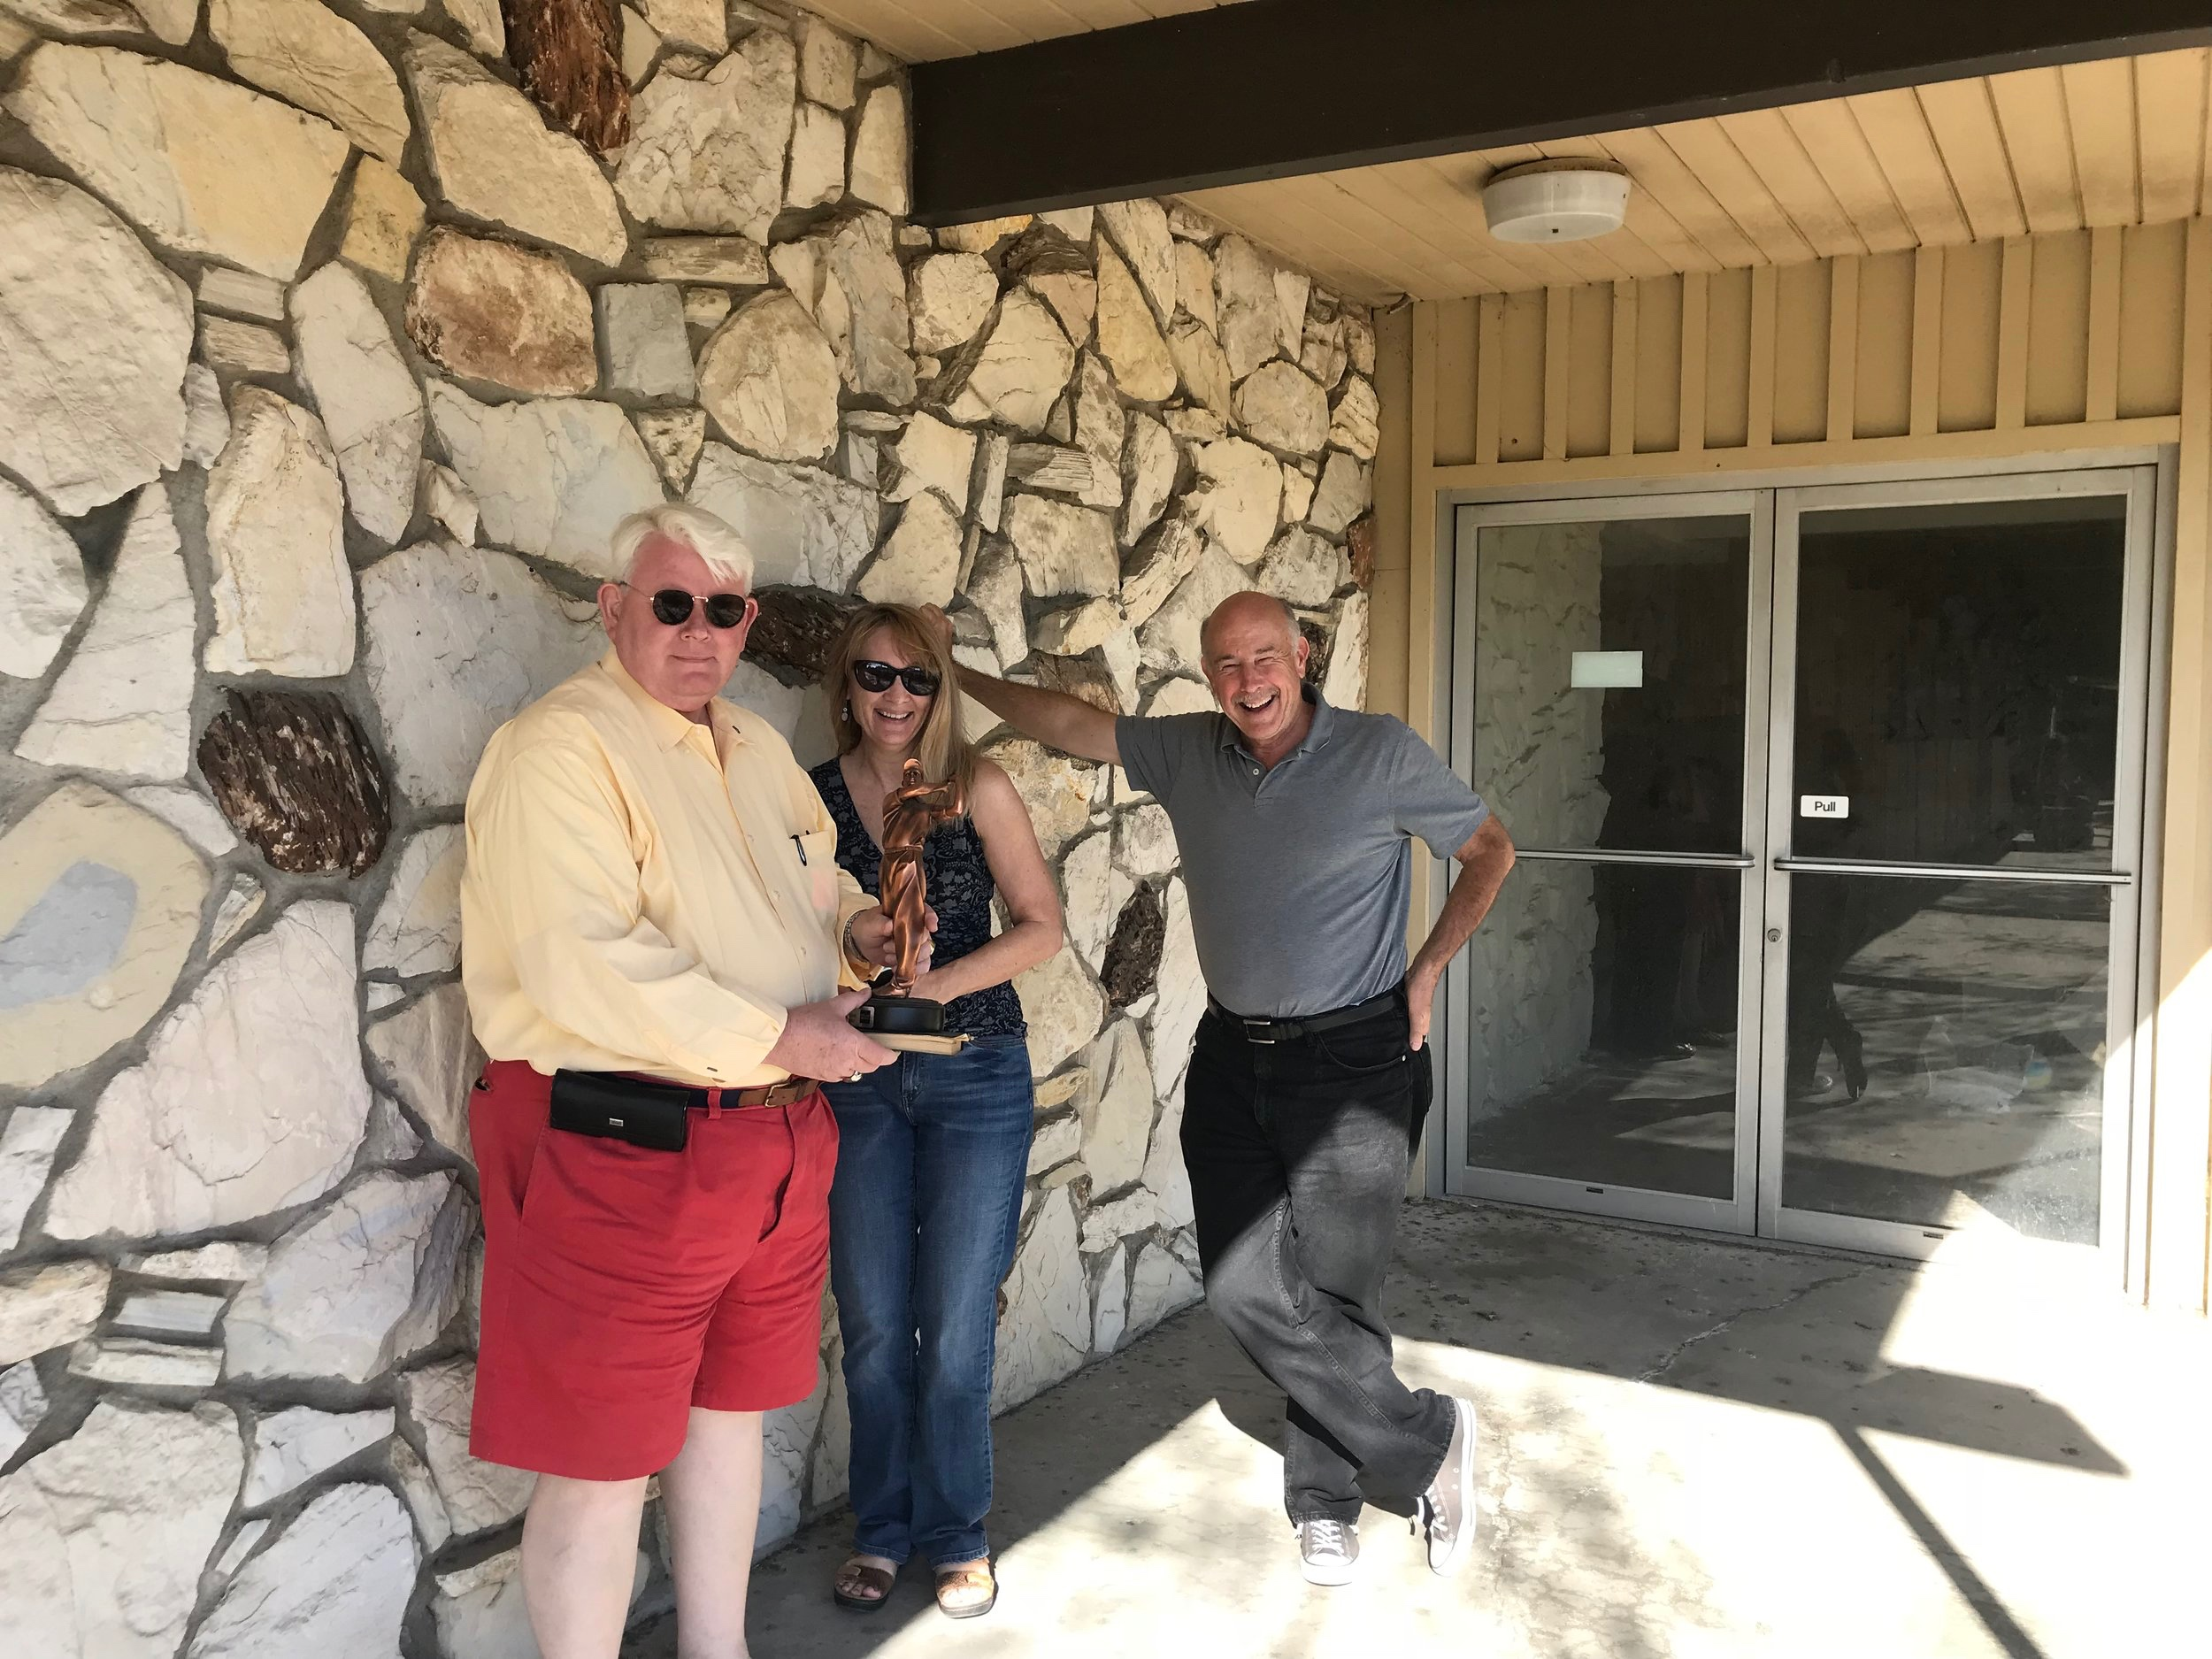 Lisa Taylor with board members, Tim Rush and Alan Hess, on tour of Midcentury Modern OC